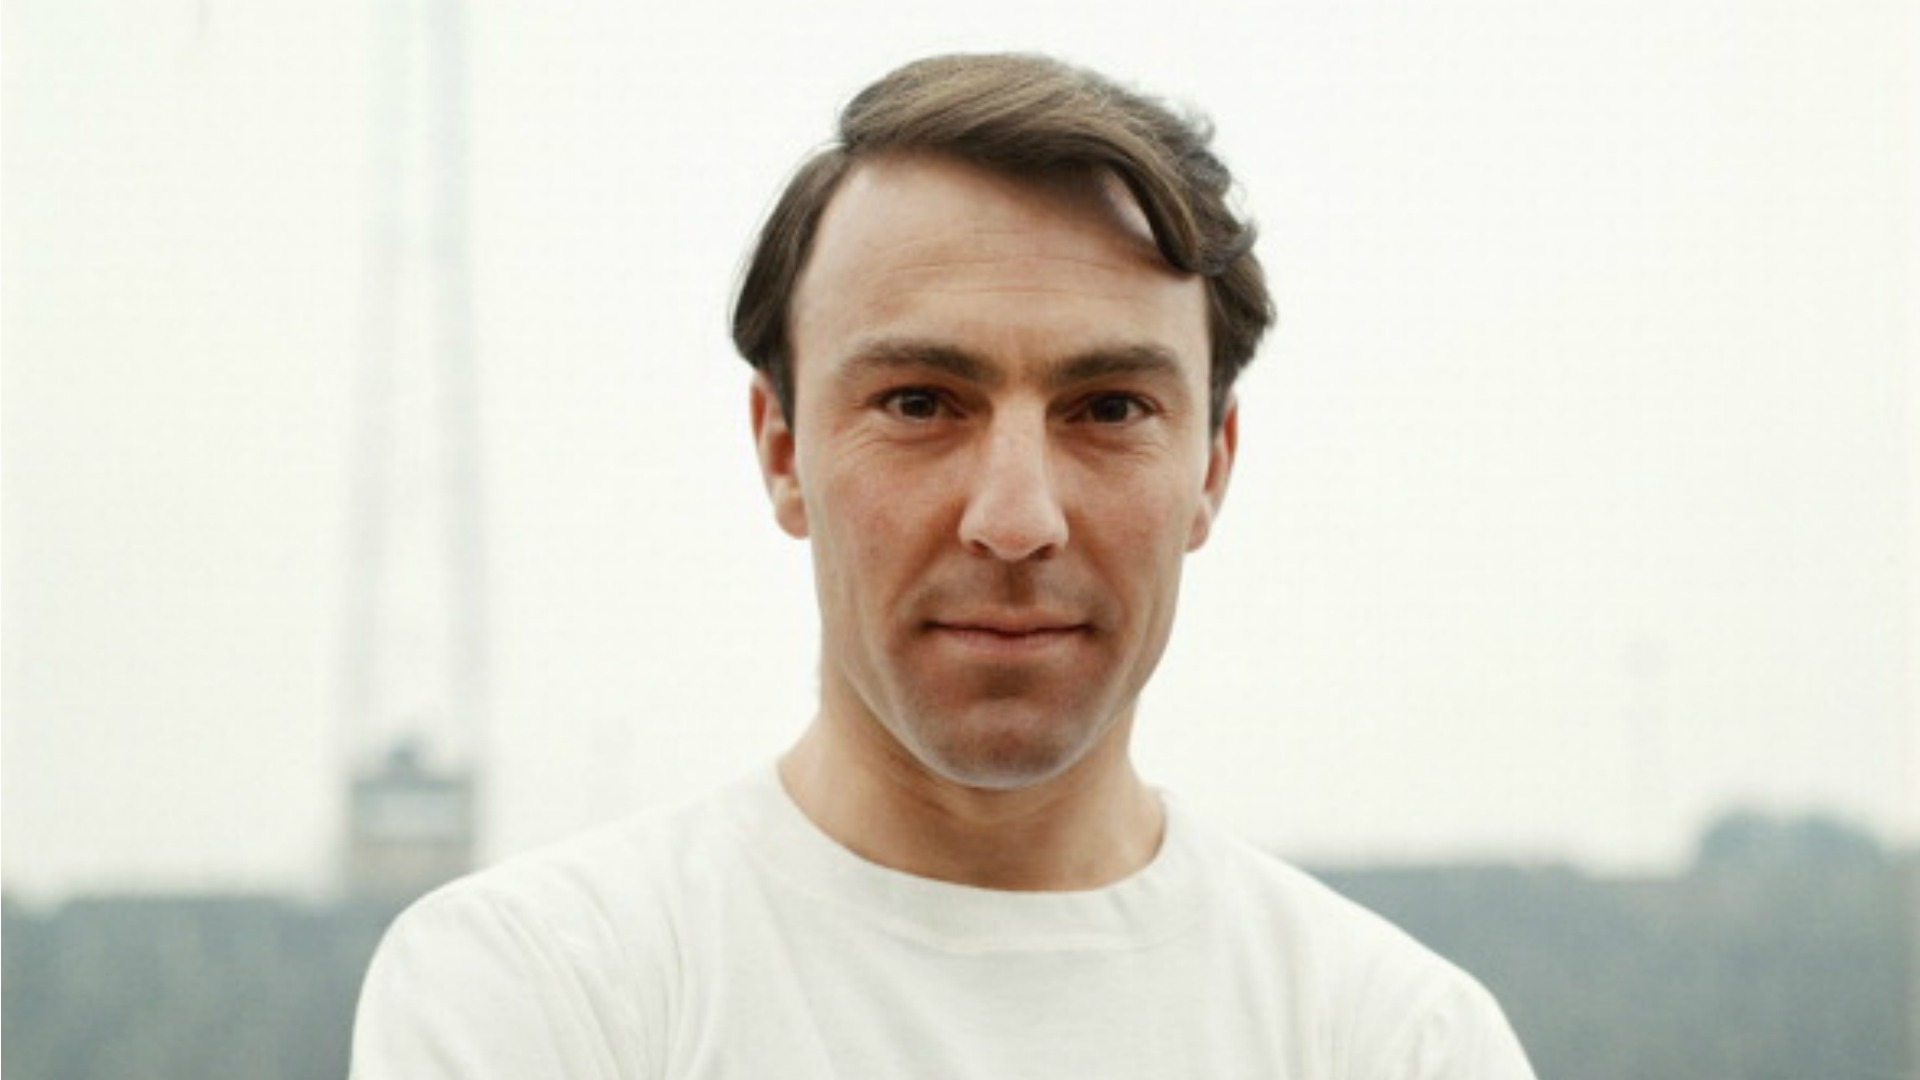 Tottenham and England legend Jimmy Greaves dies aged 81